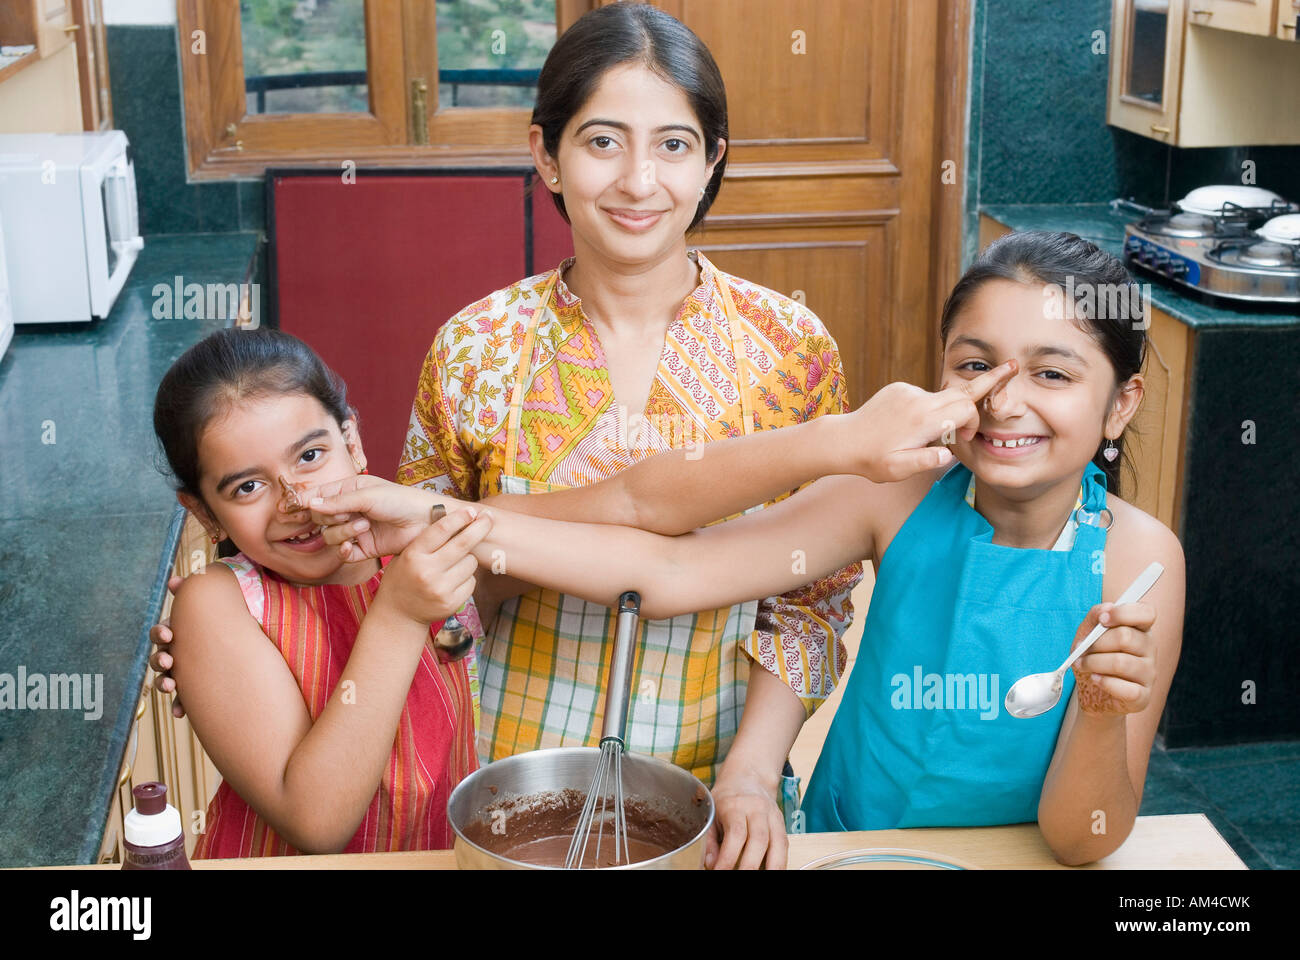 Portrait of a mid adult woman baking chocolate sauce with her daughters touching each other's nose - Stock Image